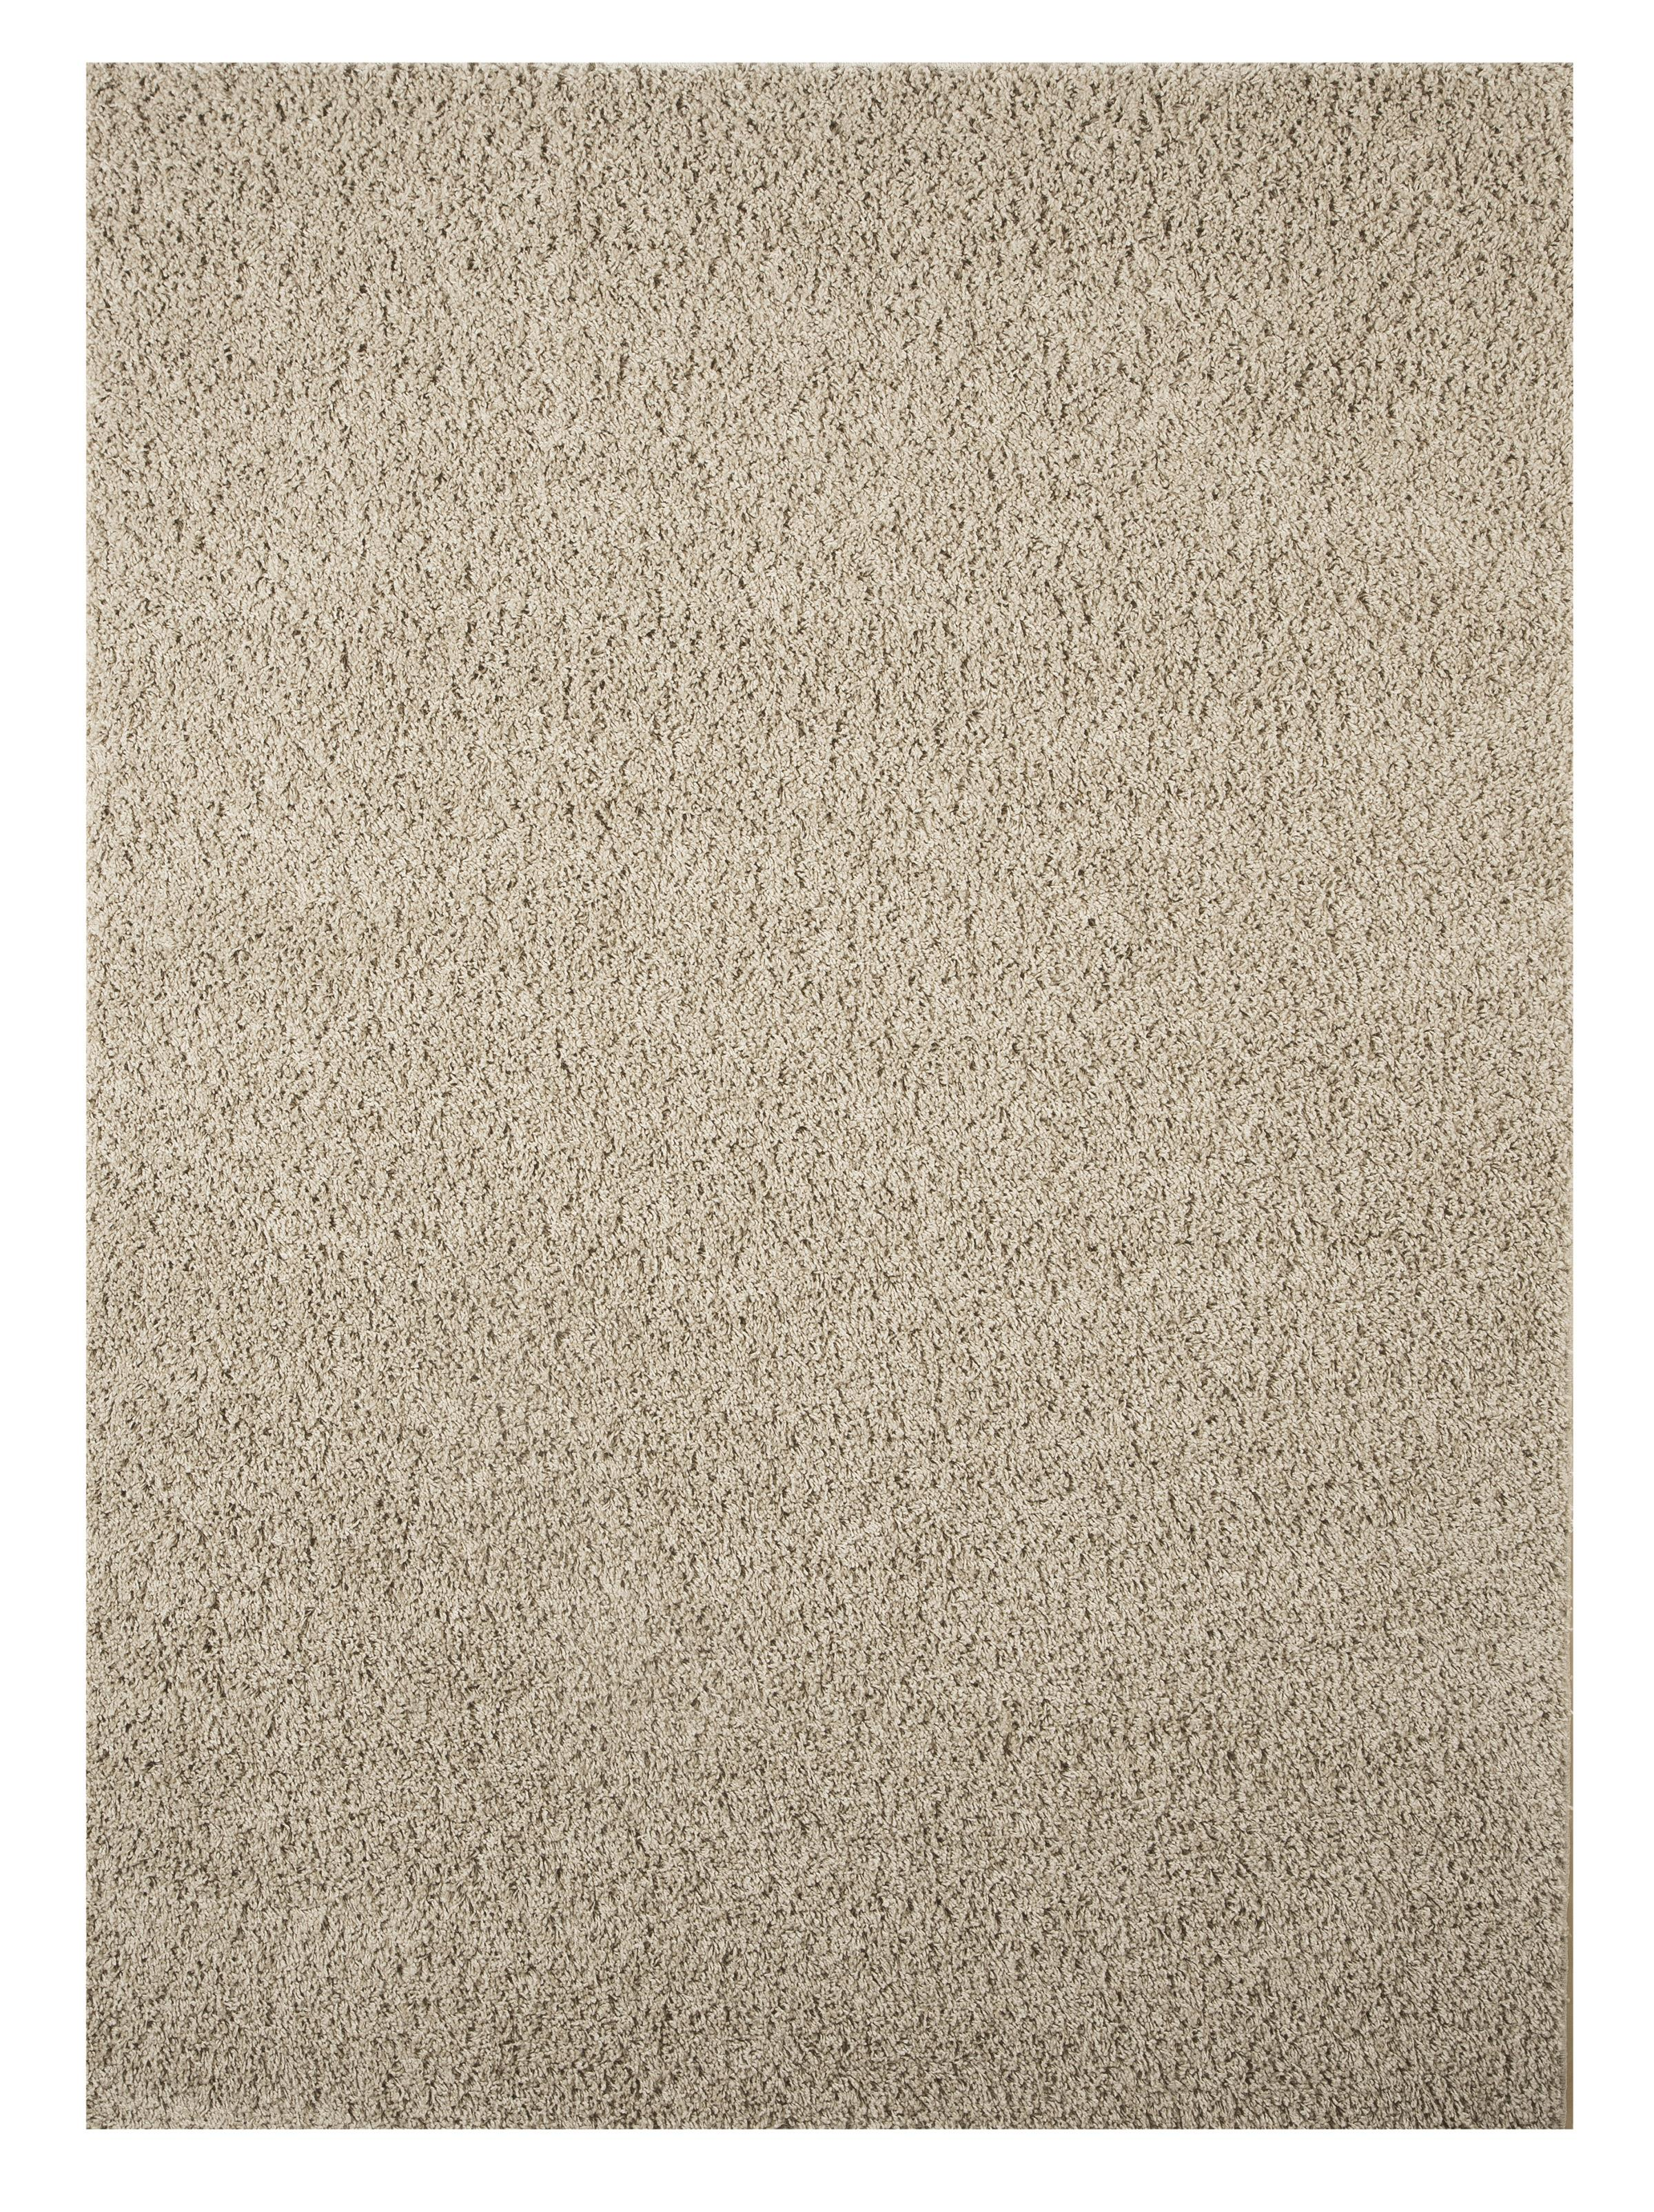 Contemporary Area Rugs Caci Beige Medium Rug by Signature Design by Ashley at Smart Buy Furniture